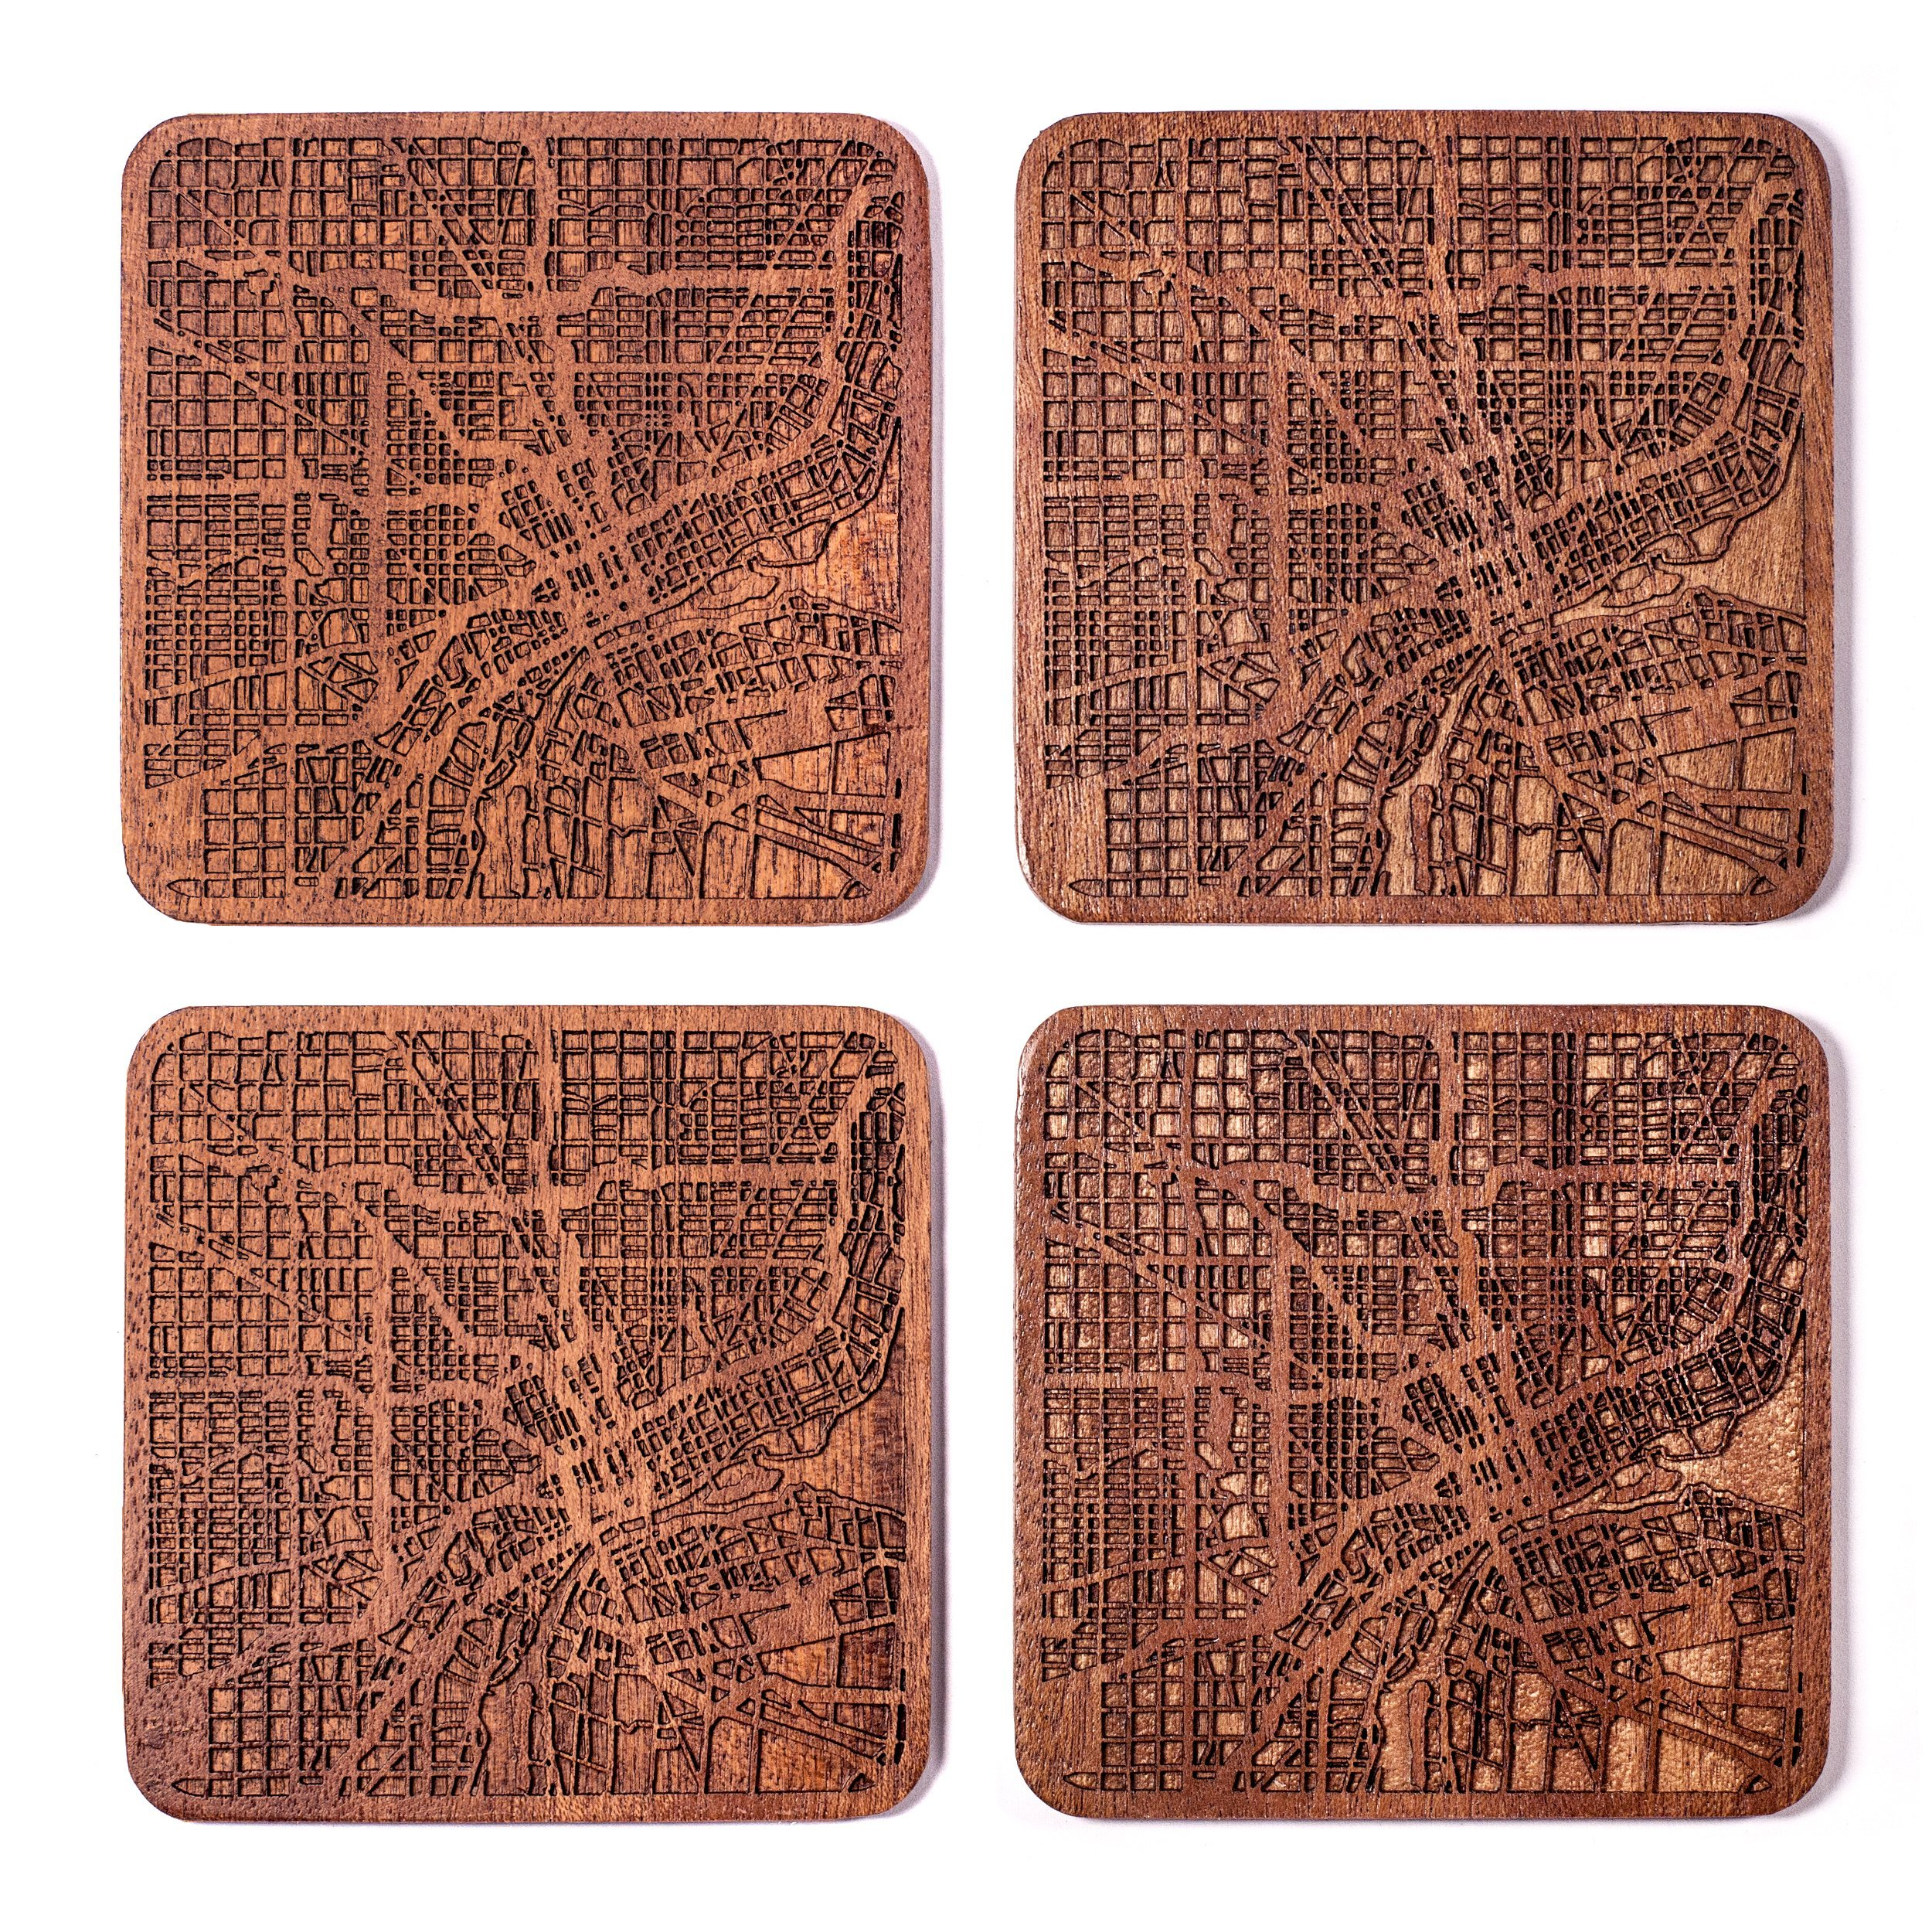 Detroit Map Coaster by O3 Design Studio, Set Of 4, Sapele Wooden Coaster With City Map, Handmade